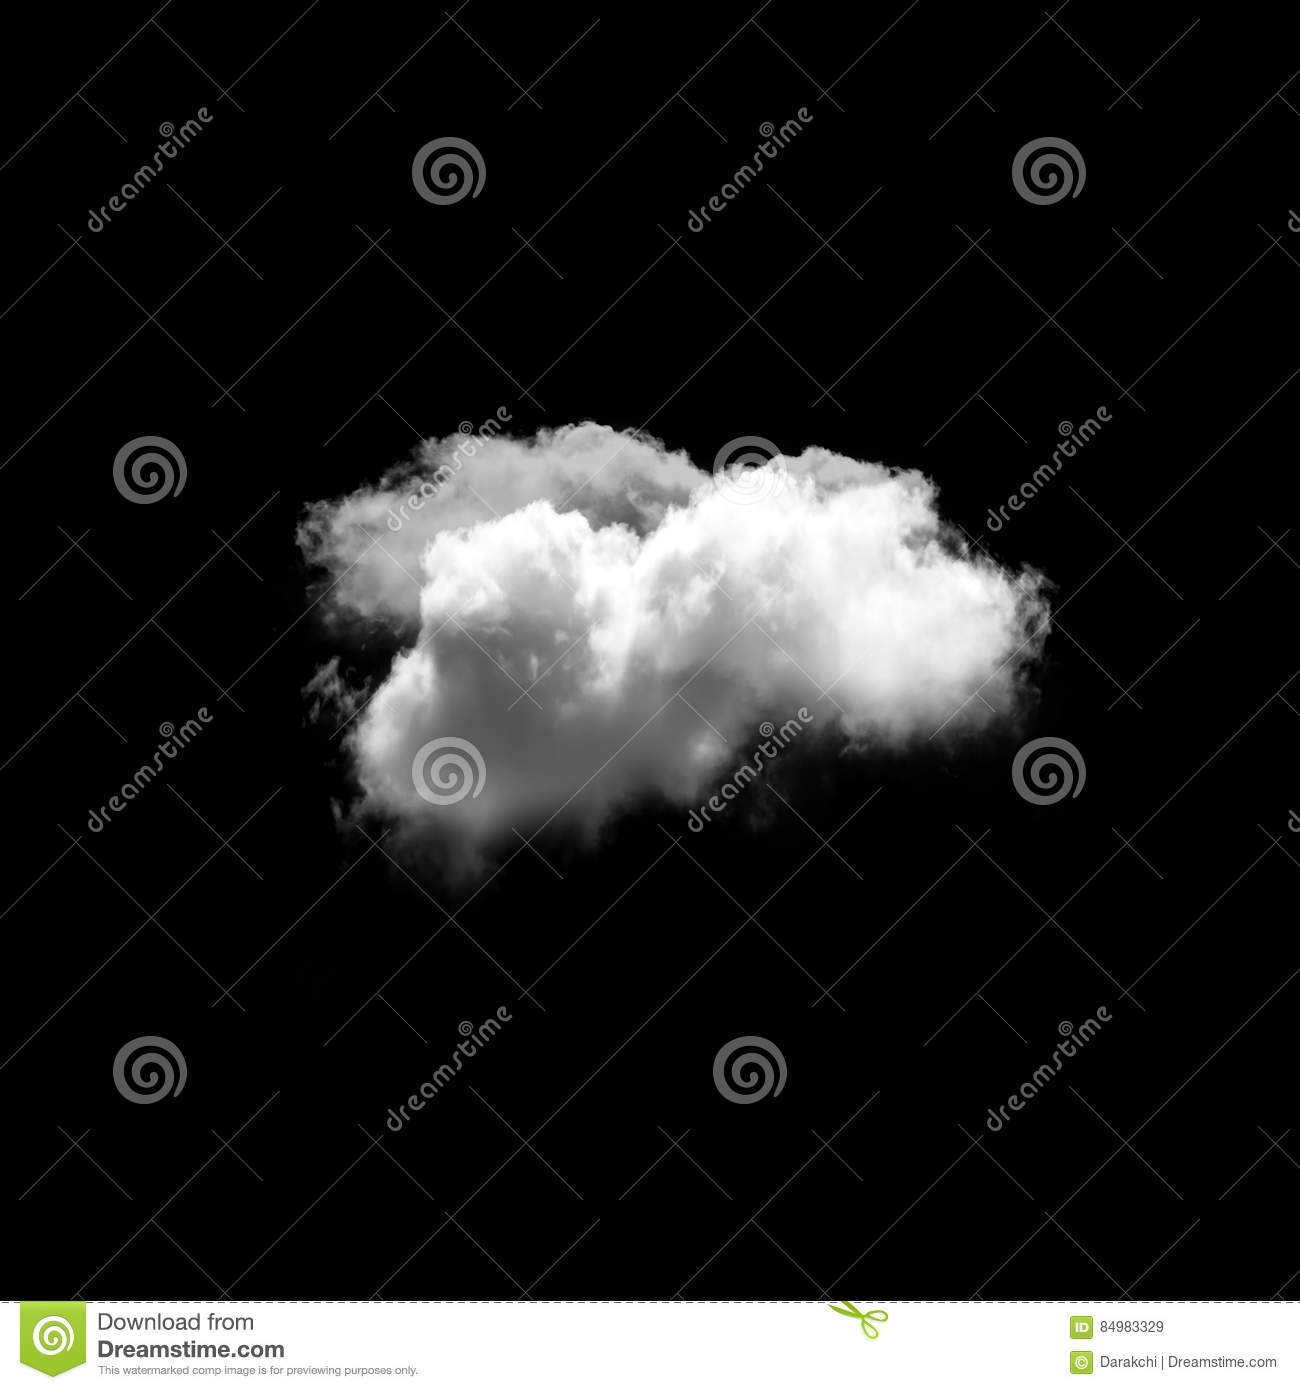 Cloud isolated over black background